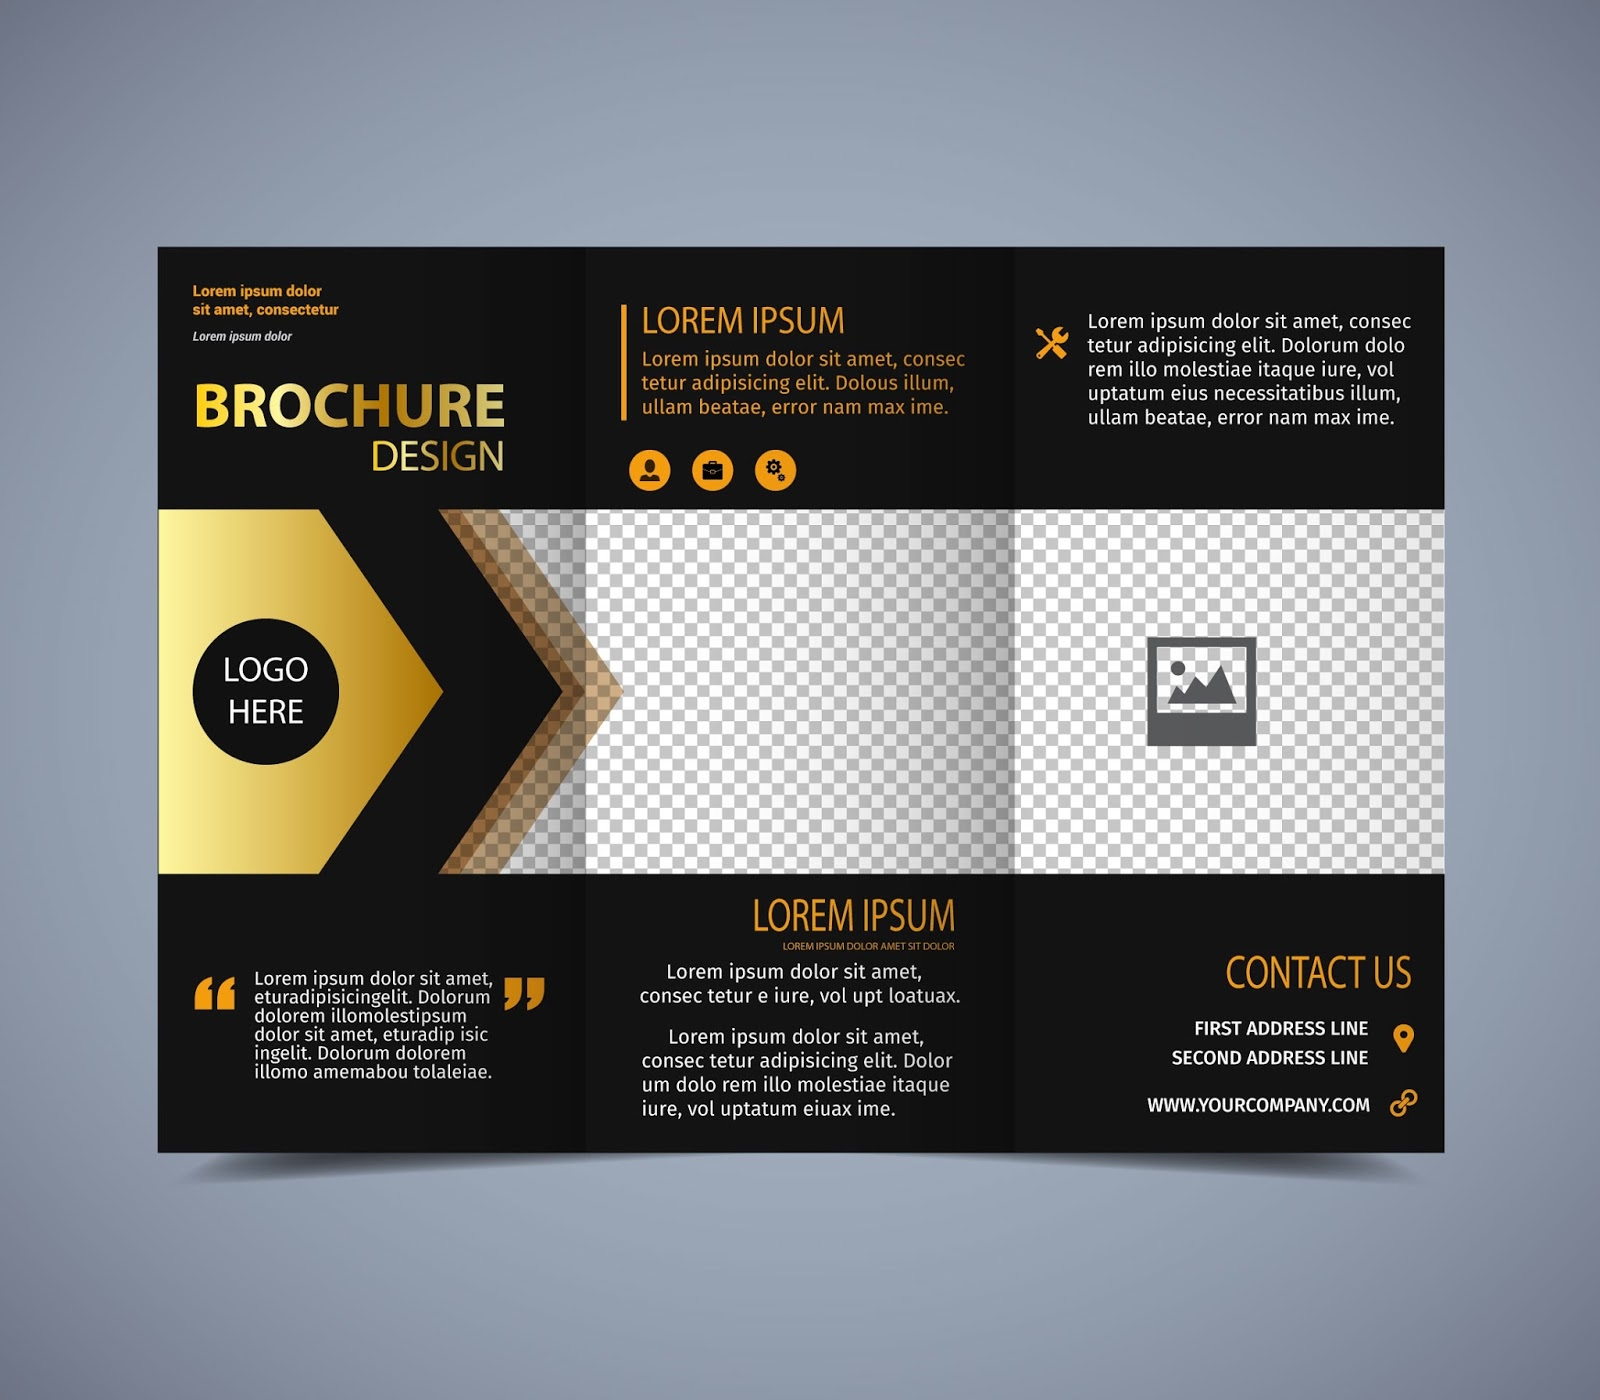 Free vector brochure design guru corel for Online brochure design